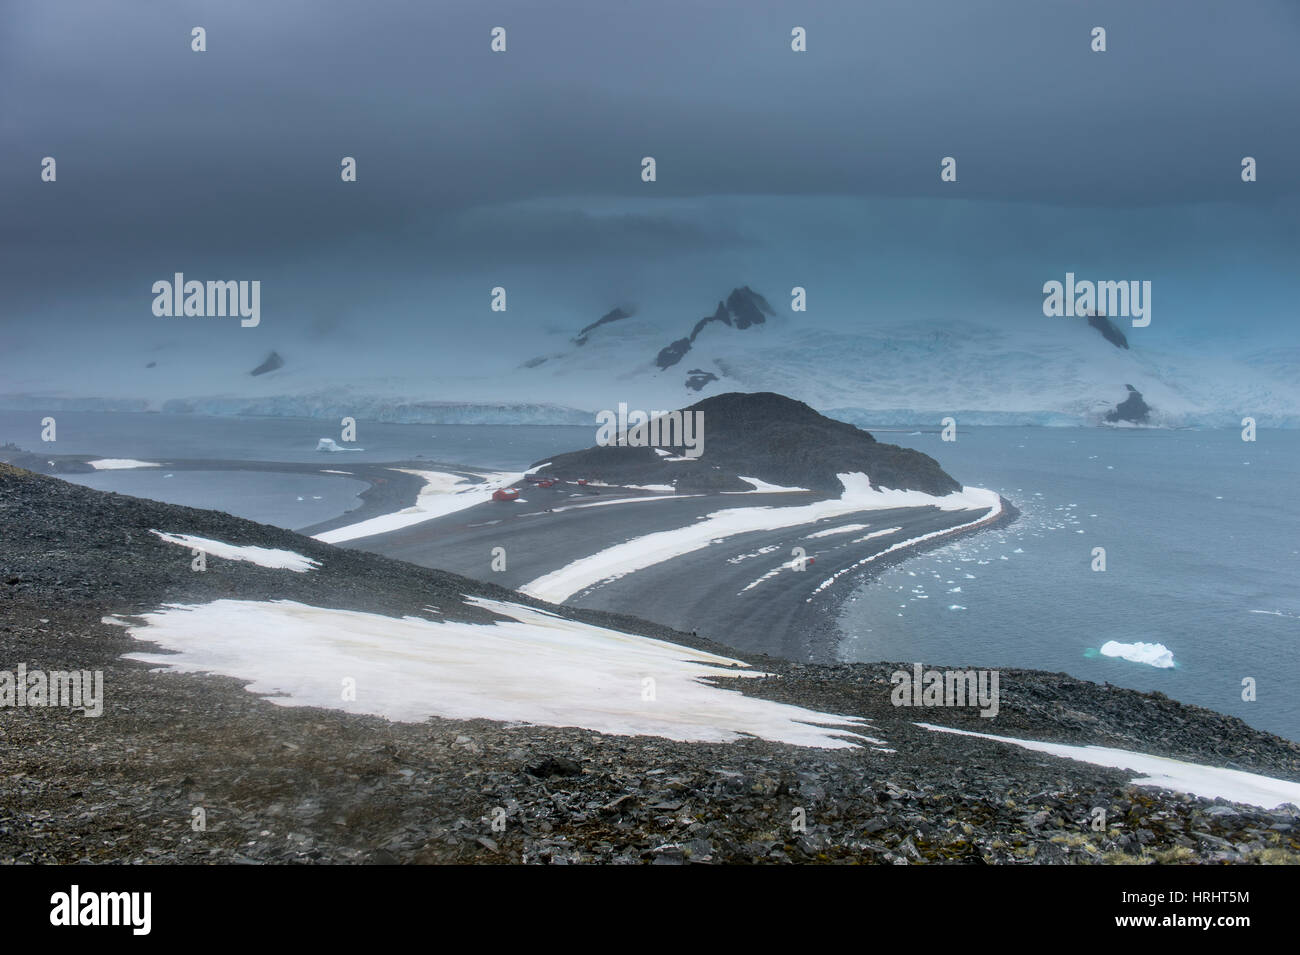 View over Half Moon Island, South Shetland Islands, Antarctica, Polar Regions - Stock Image